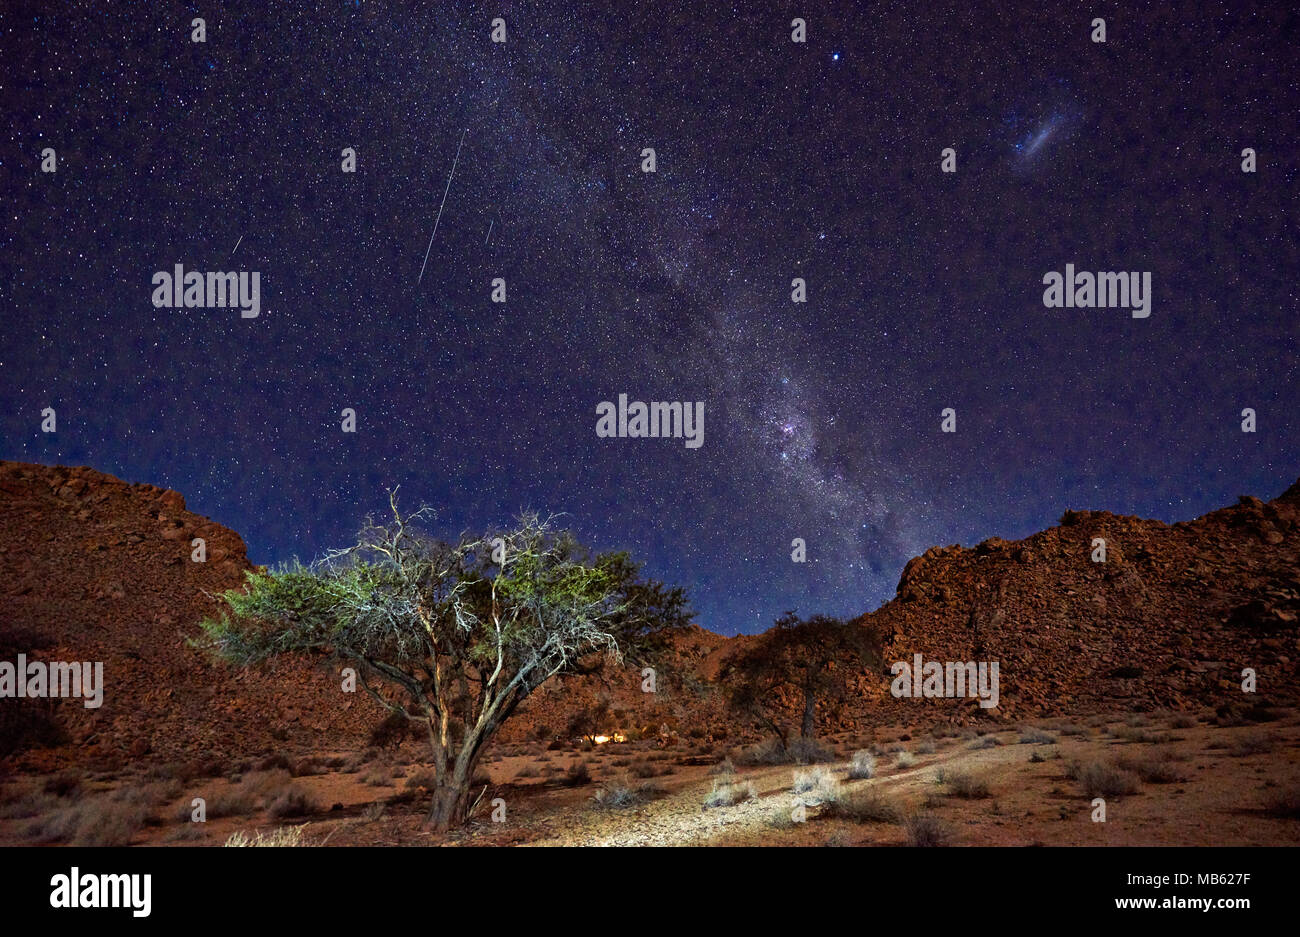 night shot of a tree with moonlight under sky with stars in tranquil landscape on Farm Klein-Aus, Geisterschlucht, Namibia, Africa - Stock Image